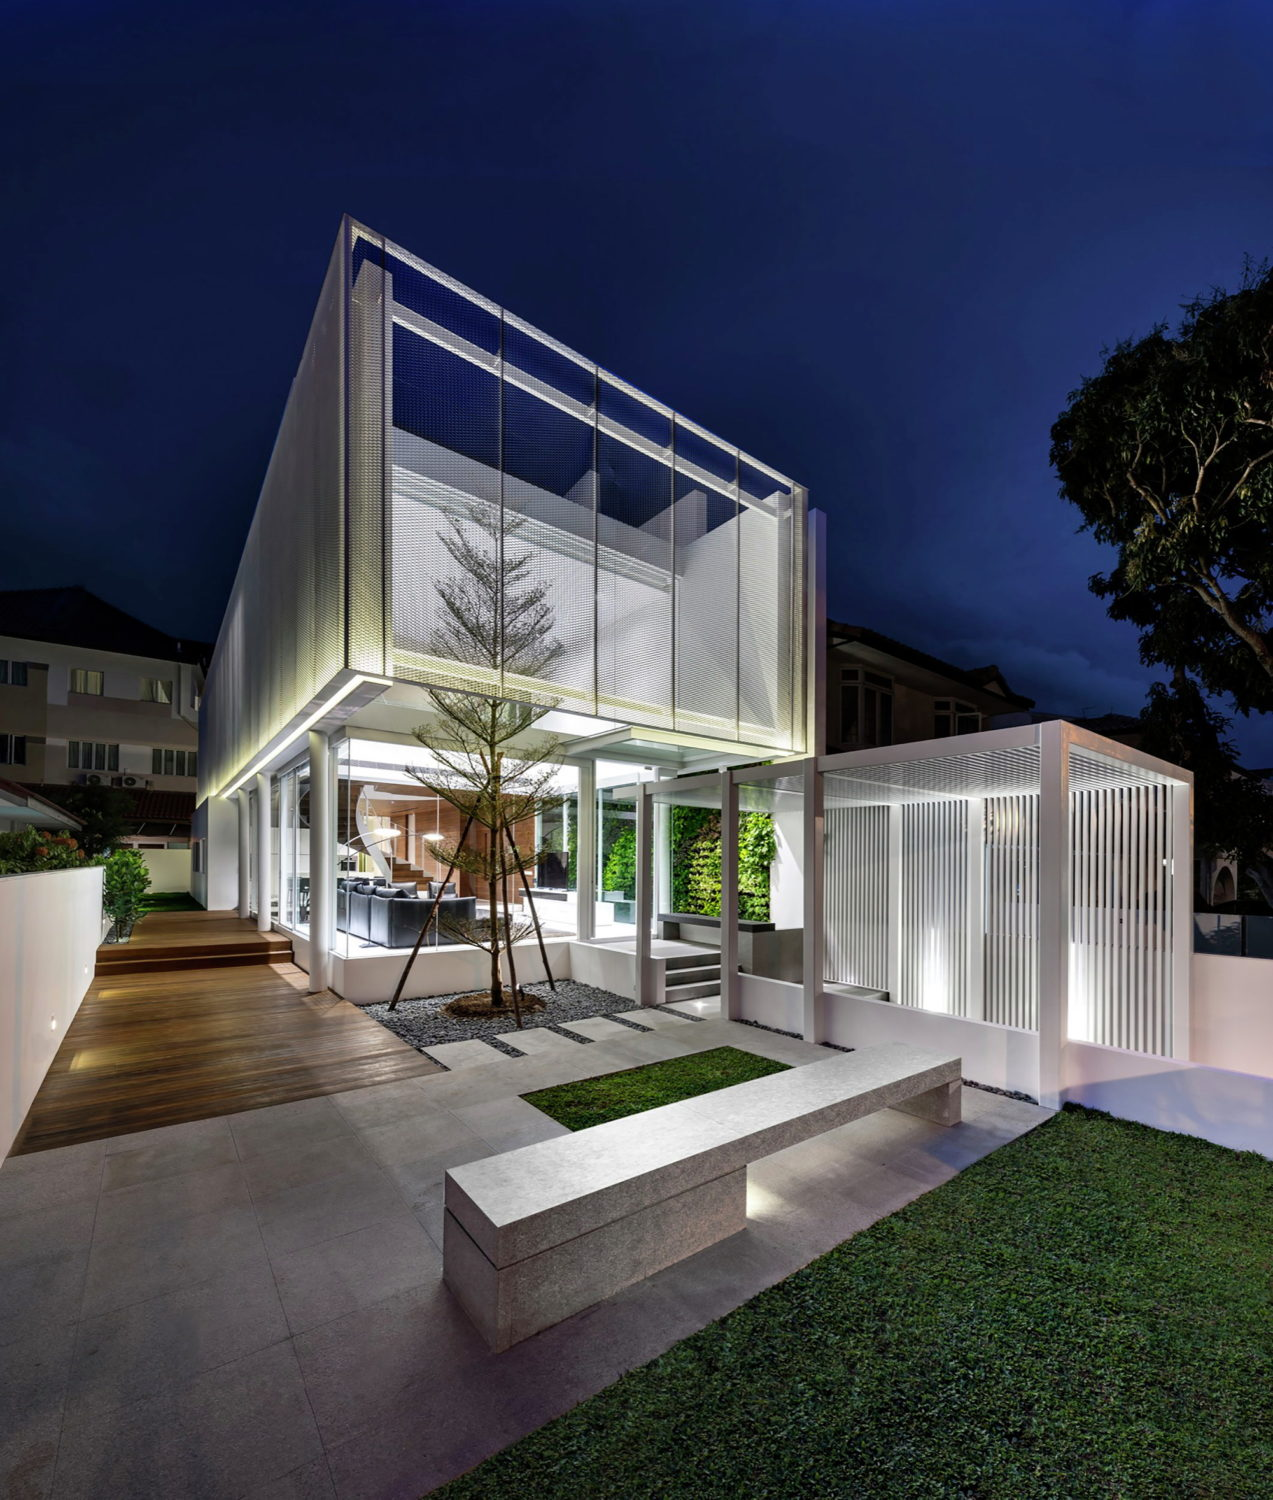 The Greja House by Park+Associates Architects